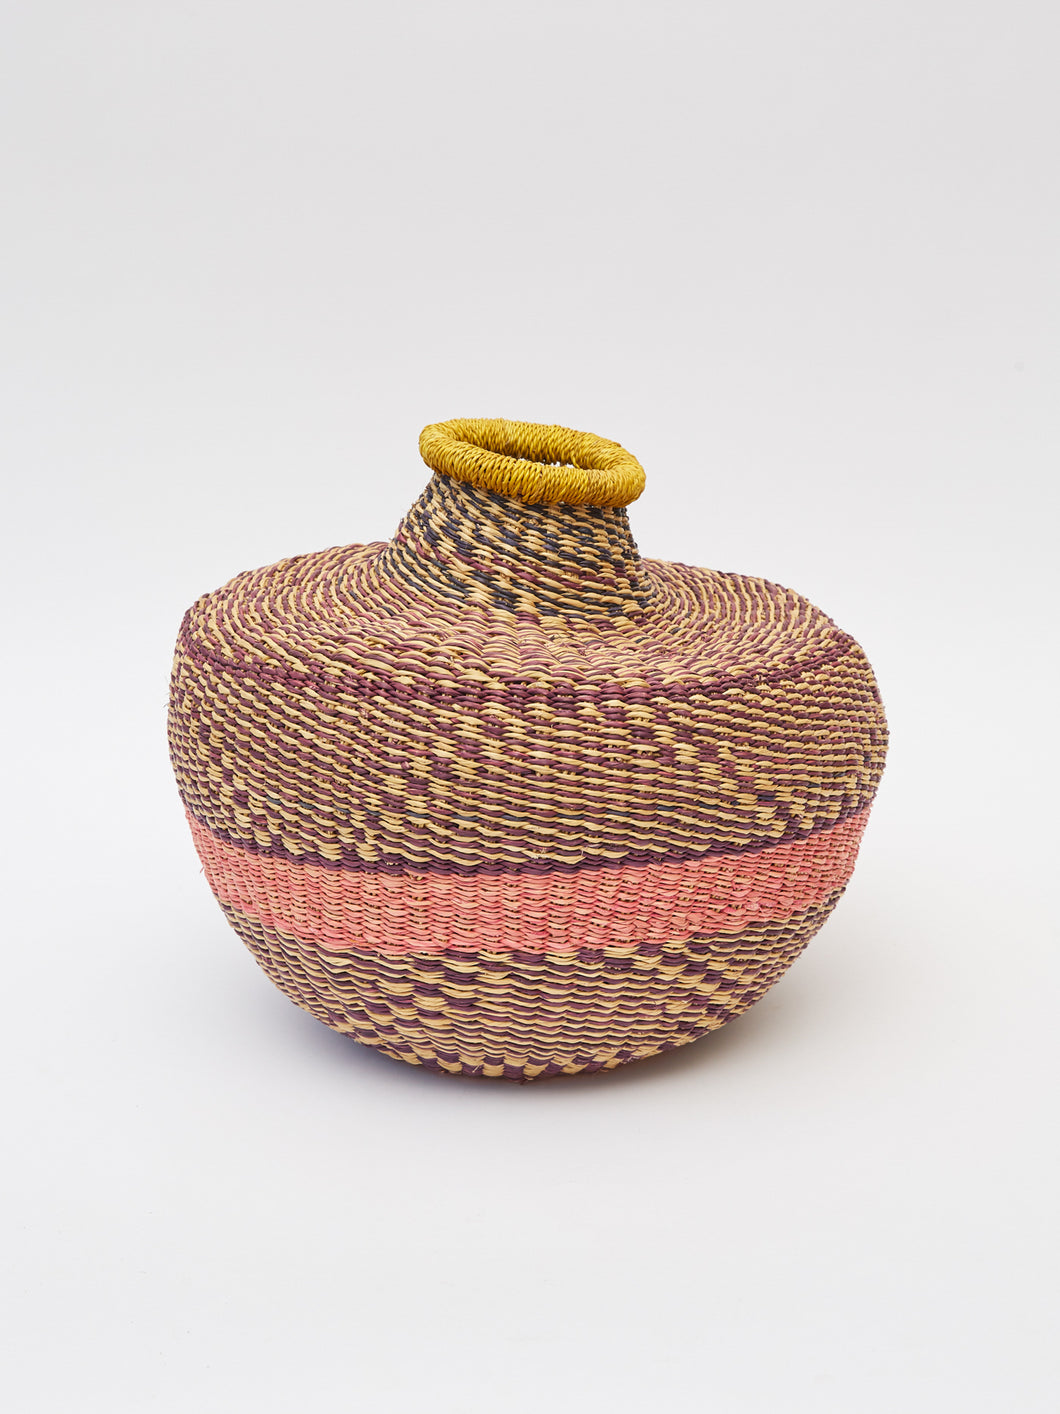 Grass Basket From Ghana-Small